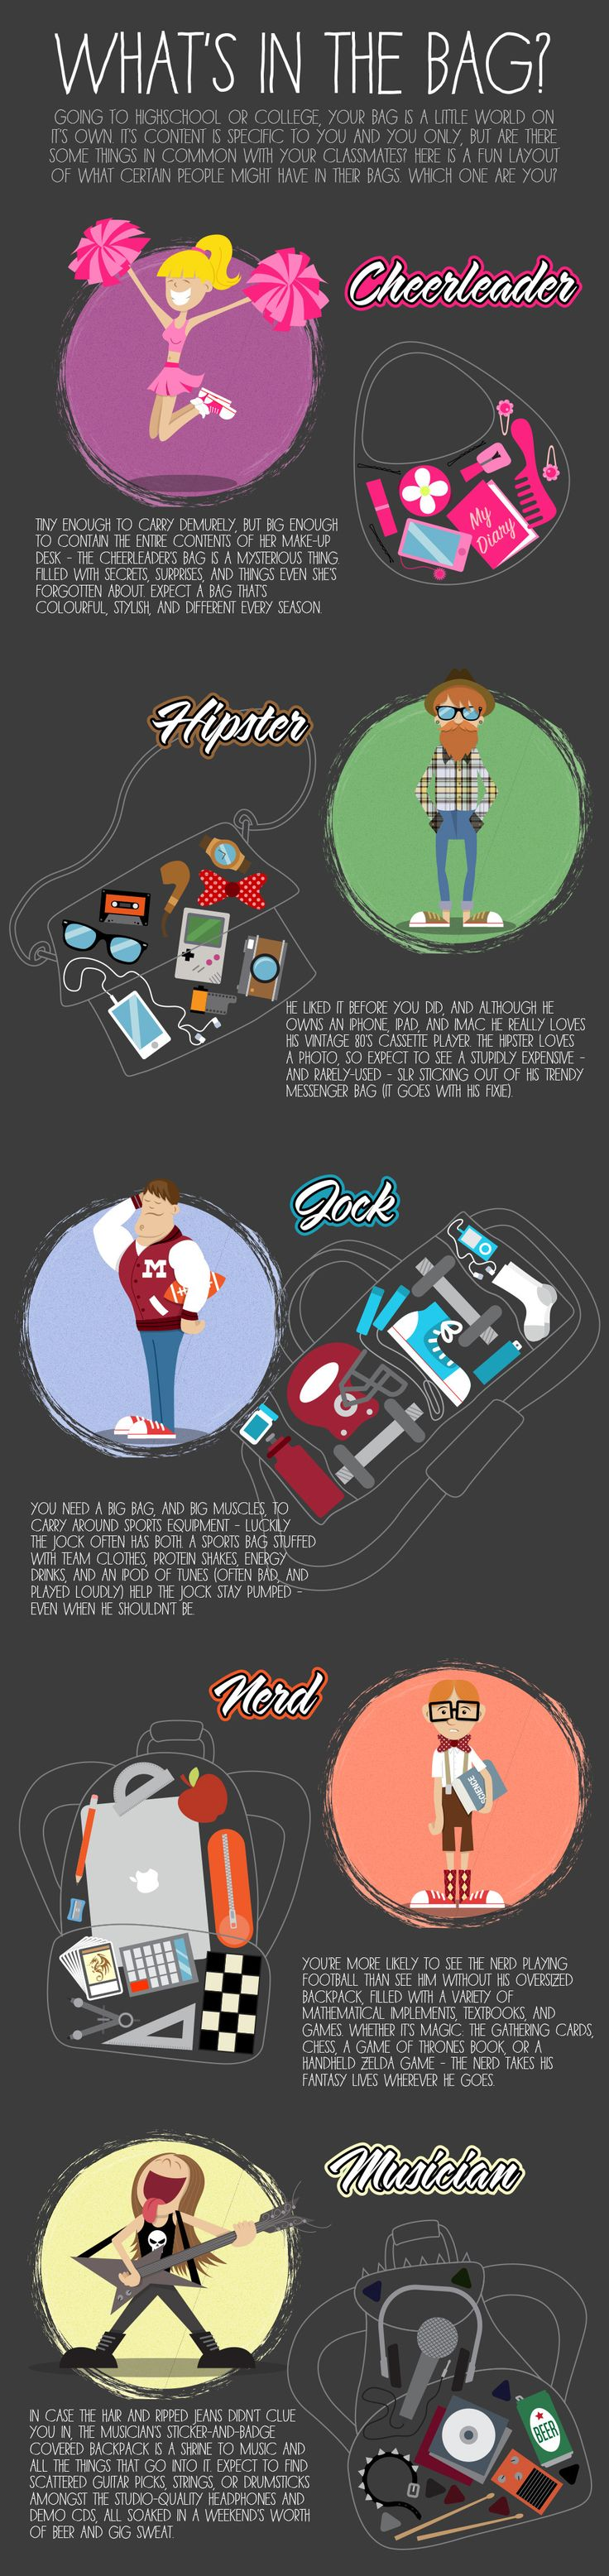 What's in the Bag? #infographic #College #School #Education